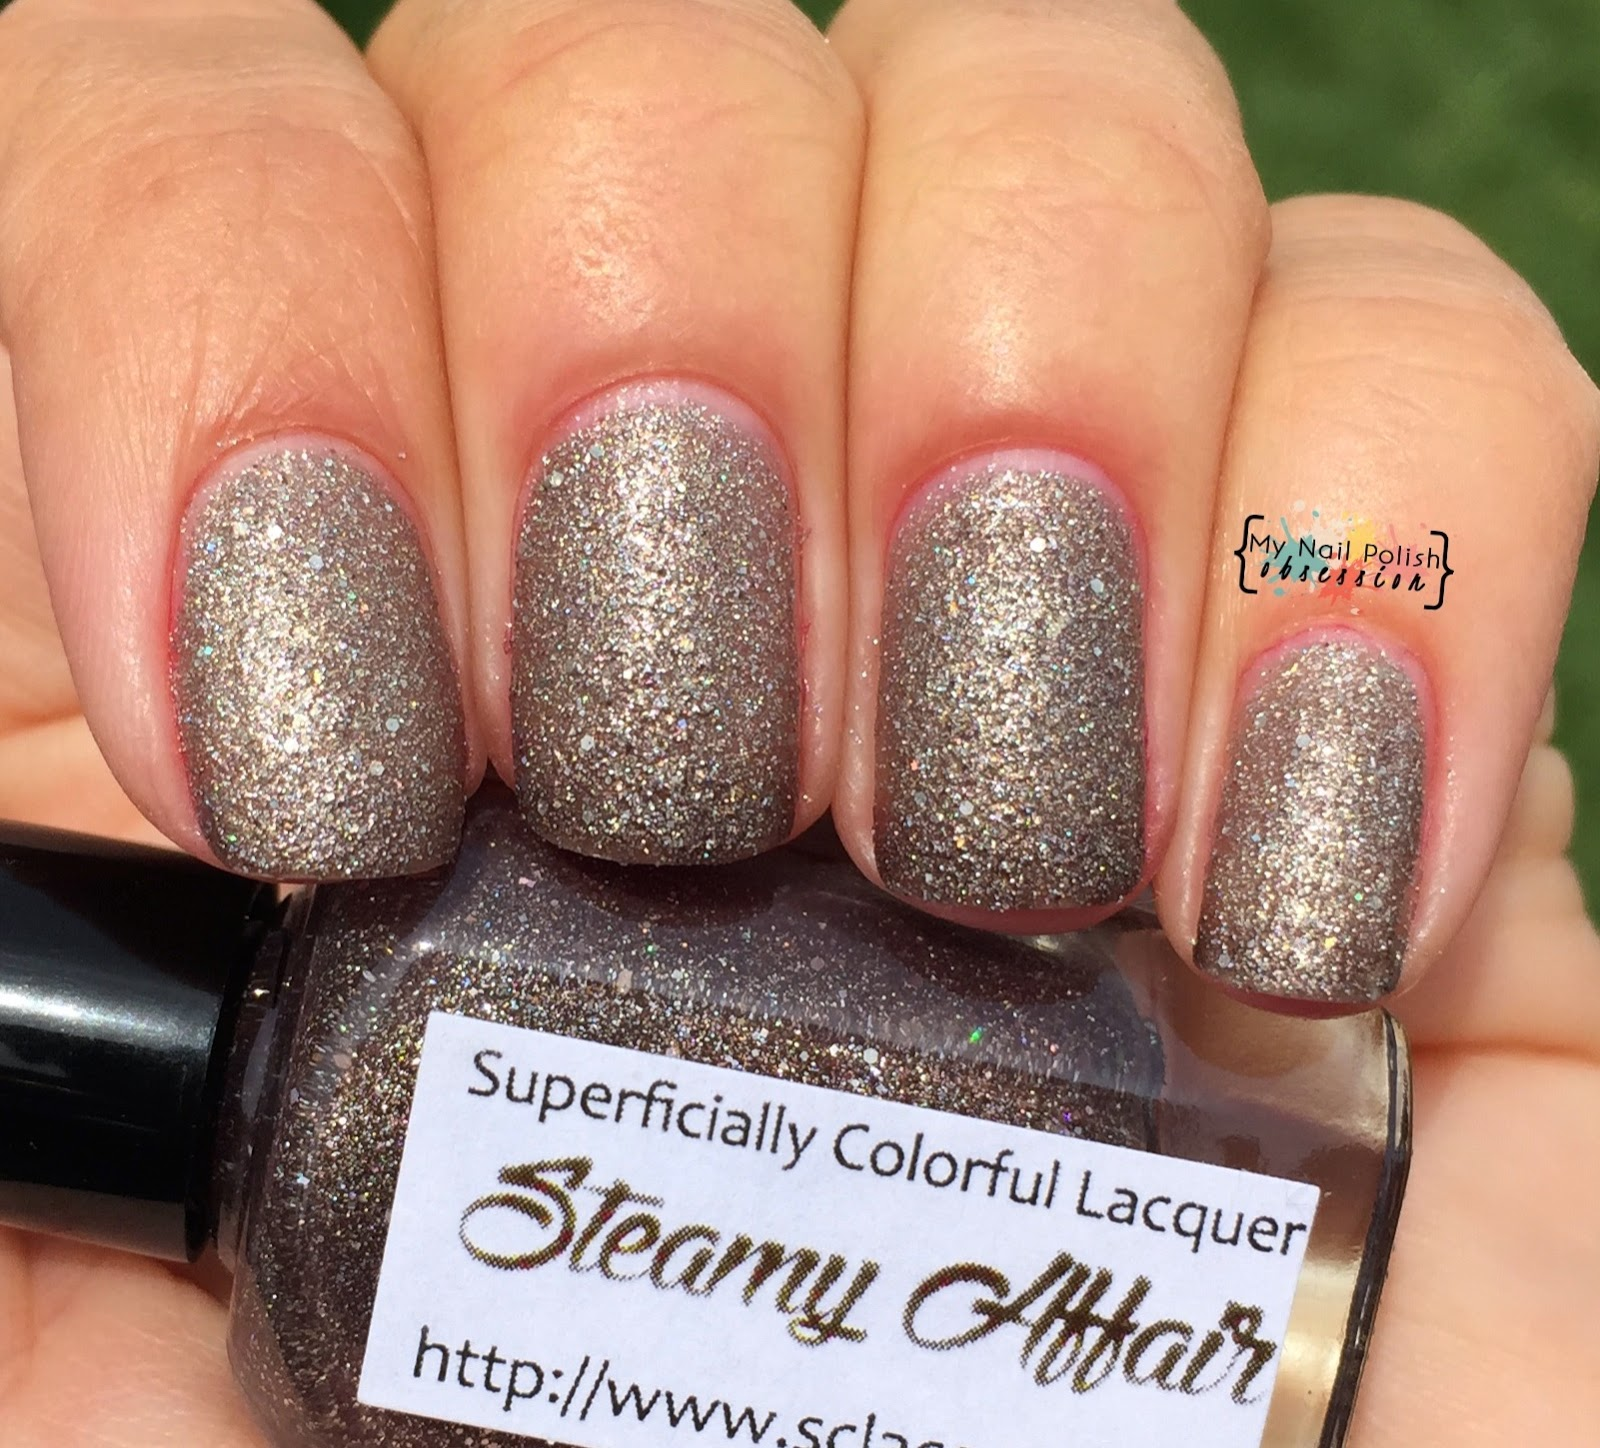 Superficially Colorful Lacquer Steamy Affair